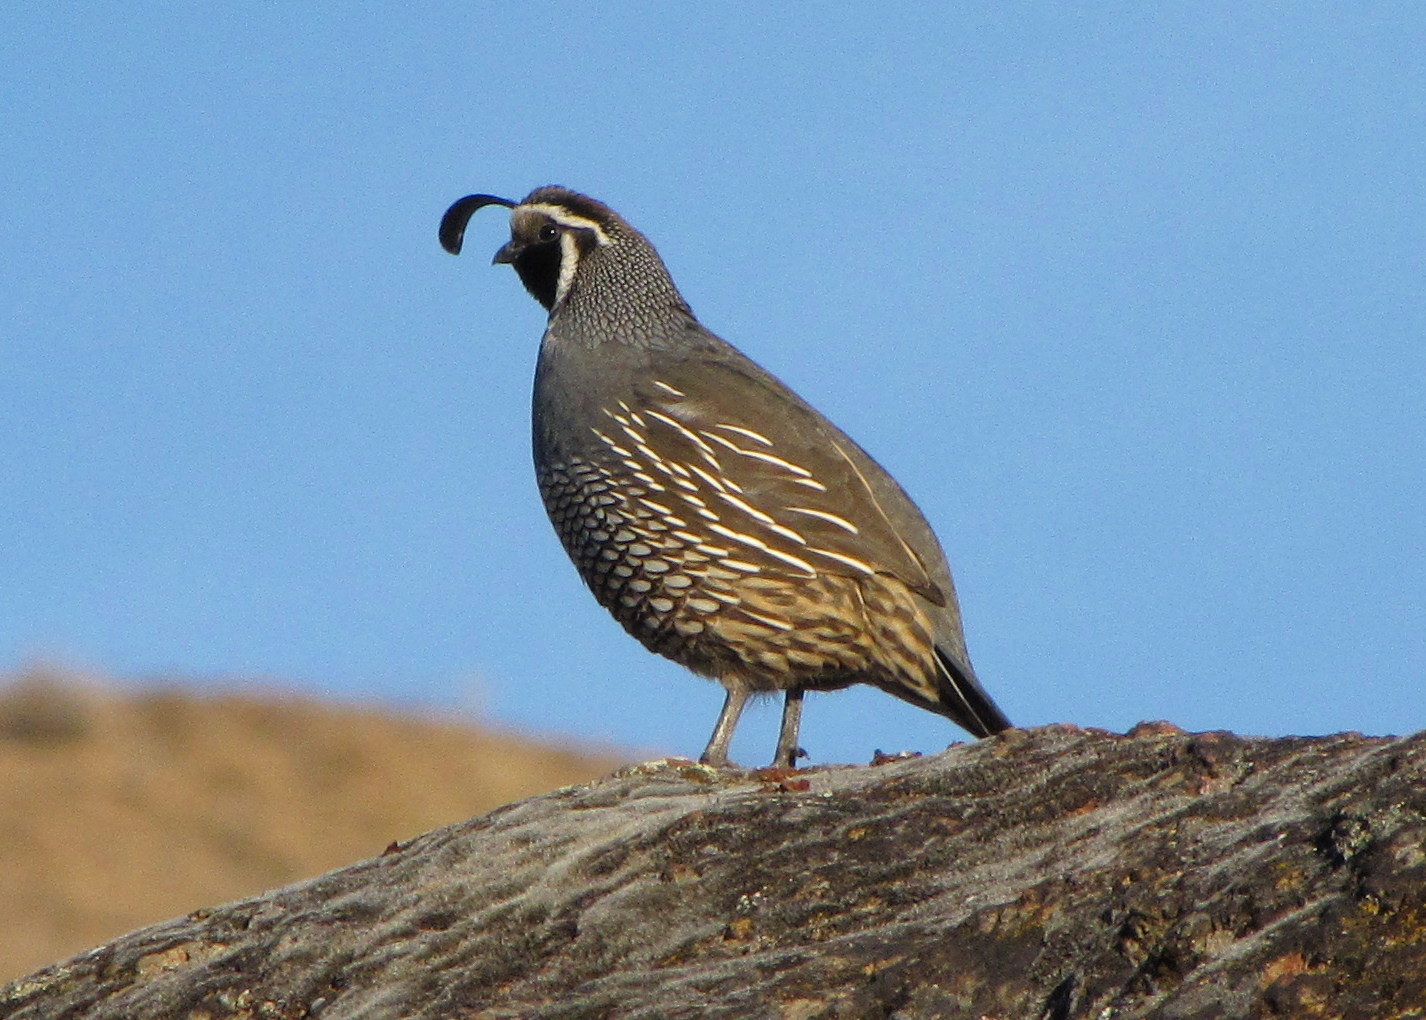 Quail on a Rock